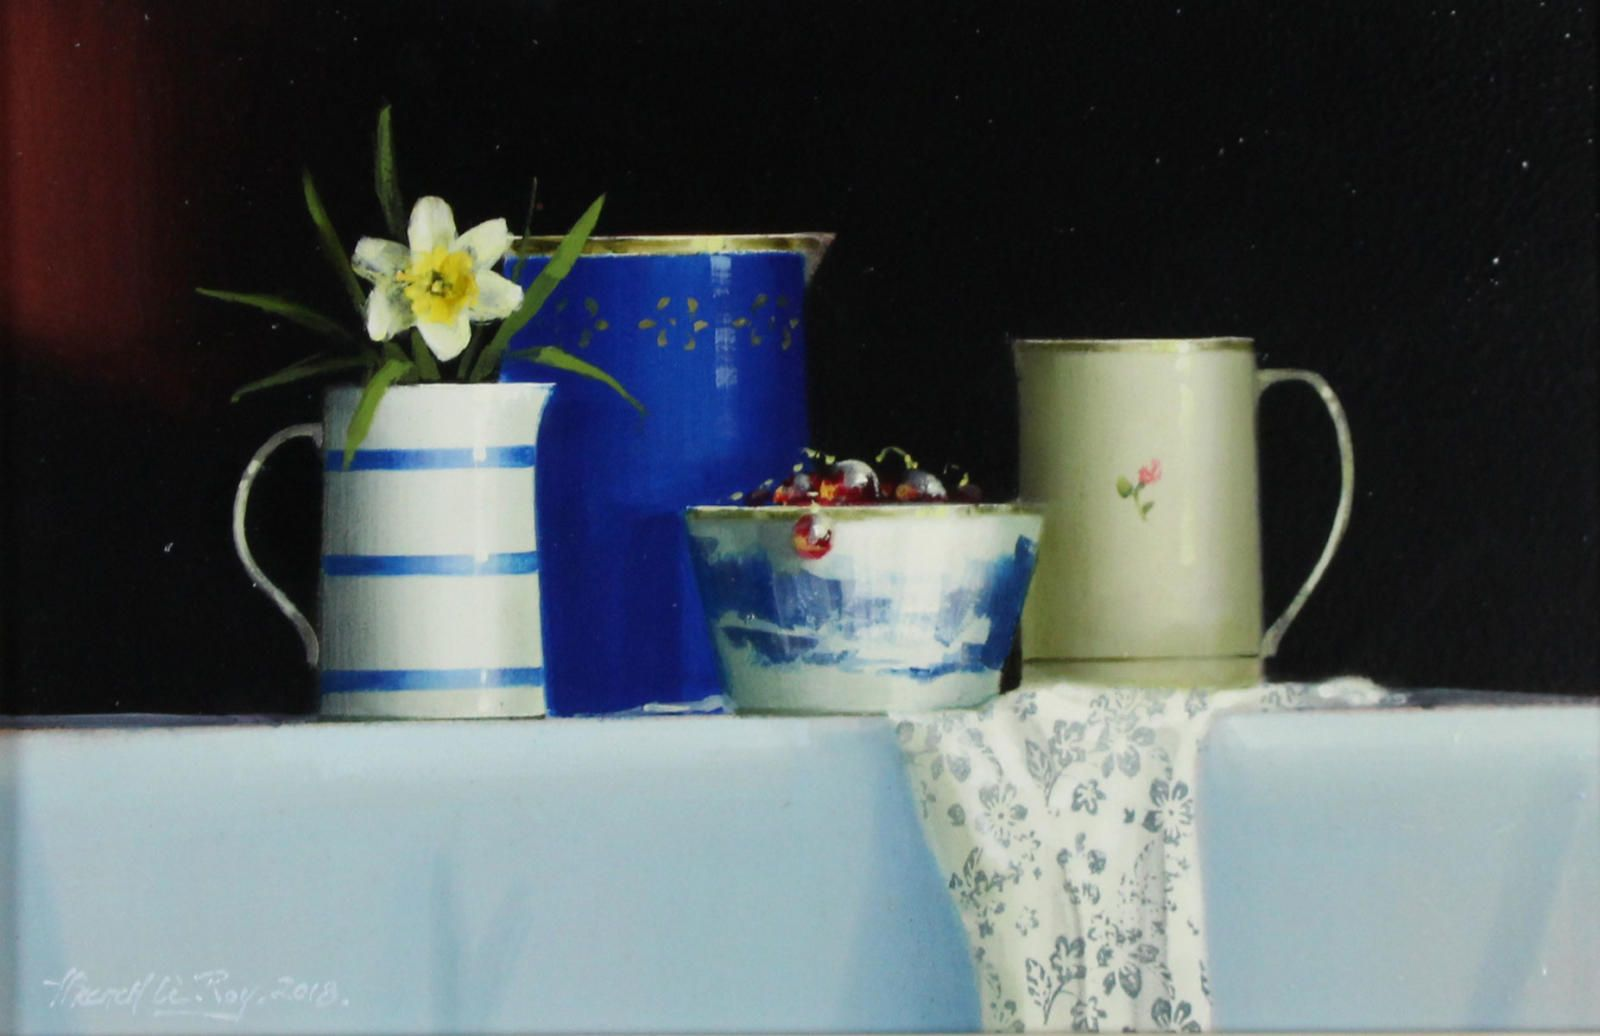 Blue Tableware with Daffodil